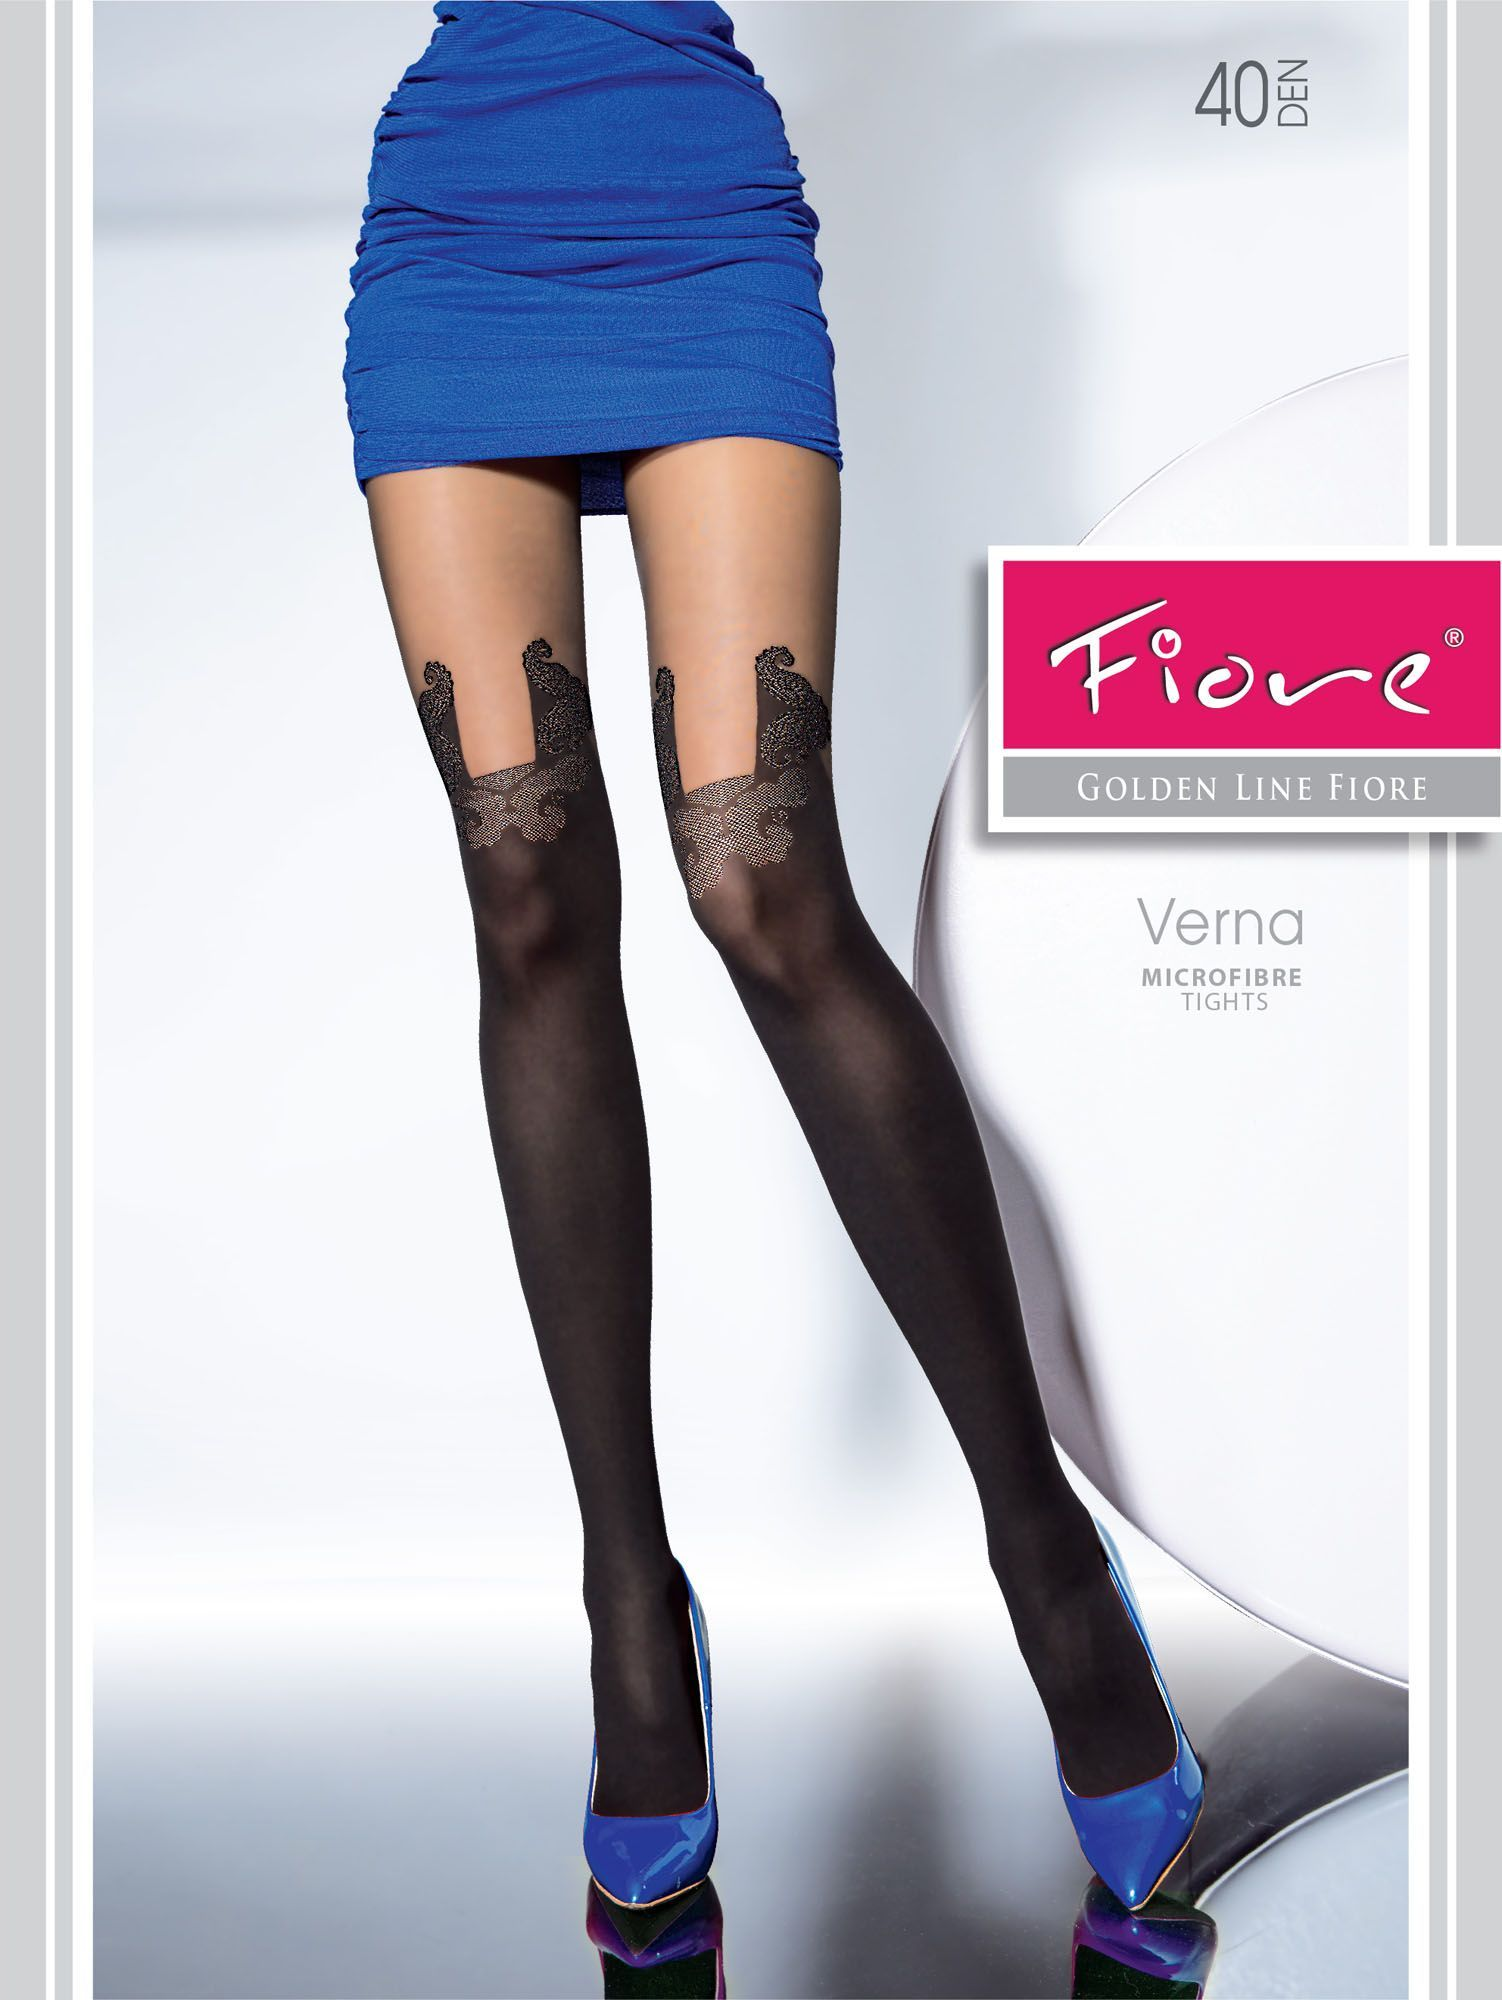 Pin by Sous-vetementsfemme on collants femme in 2018  f2927e22a2d